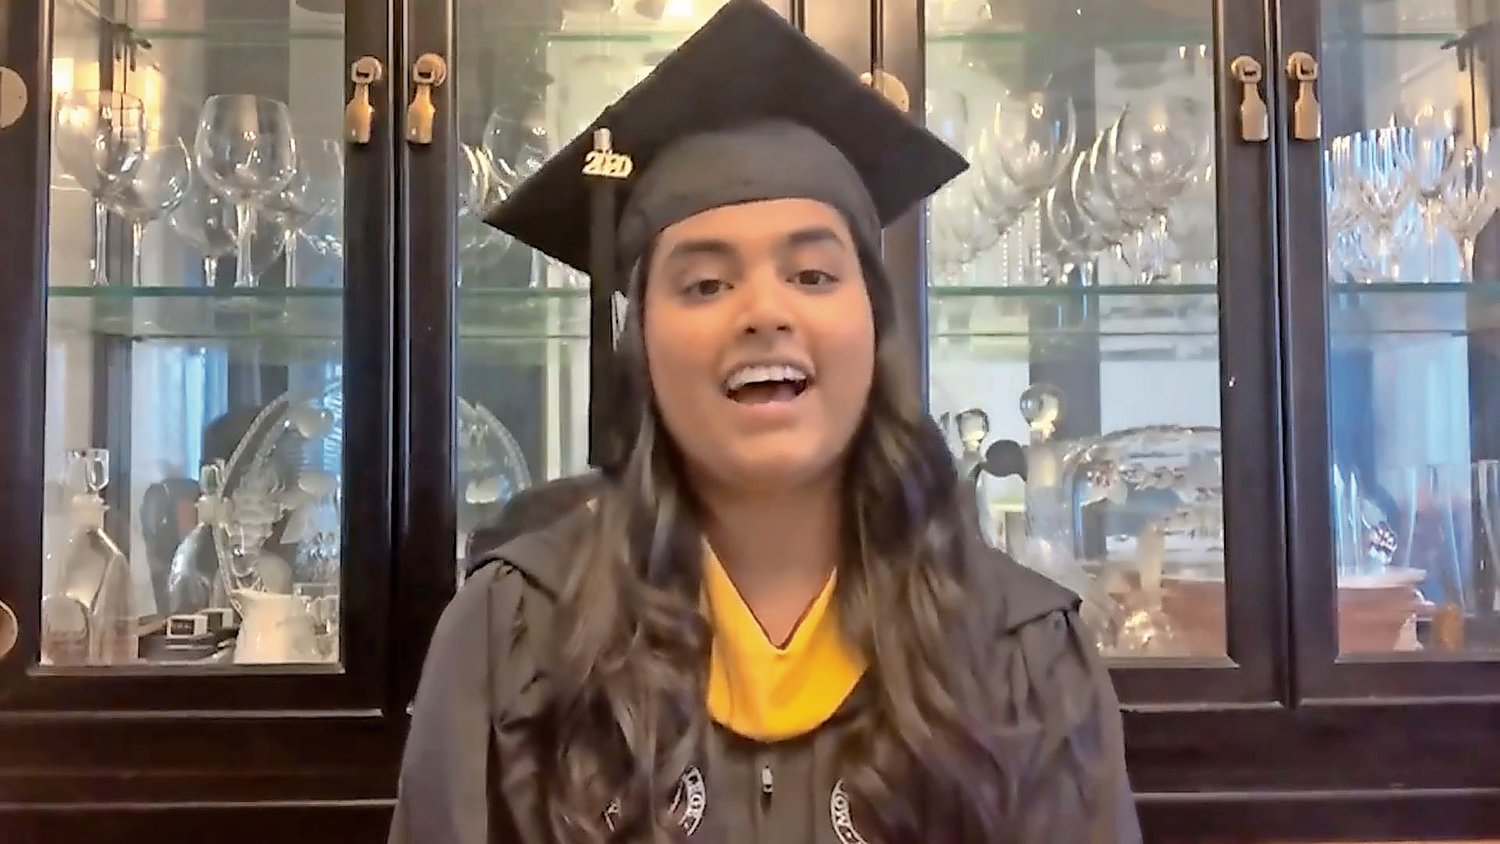 Salutatorian Dharana Prasad, who majored in biology, expressed her gratitude for her time at Molloy and wished her fellow graduates success.